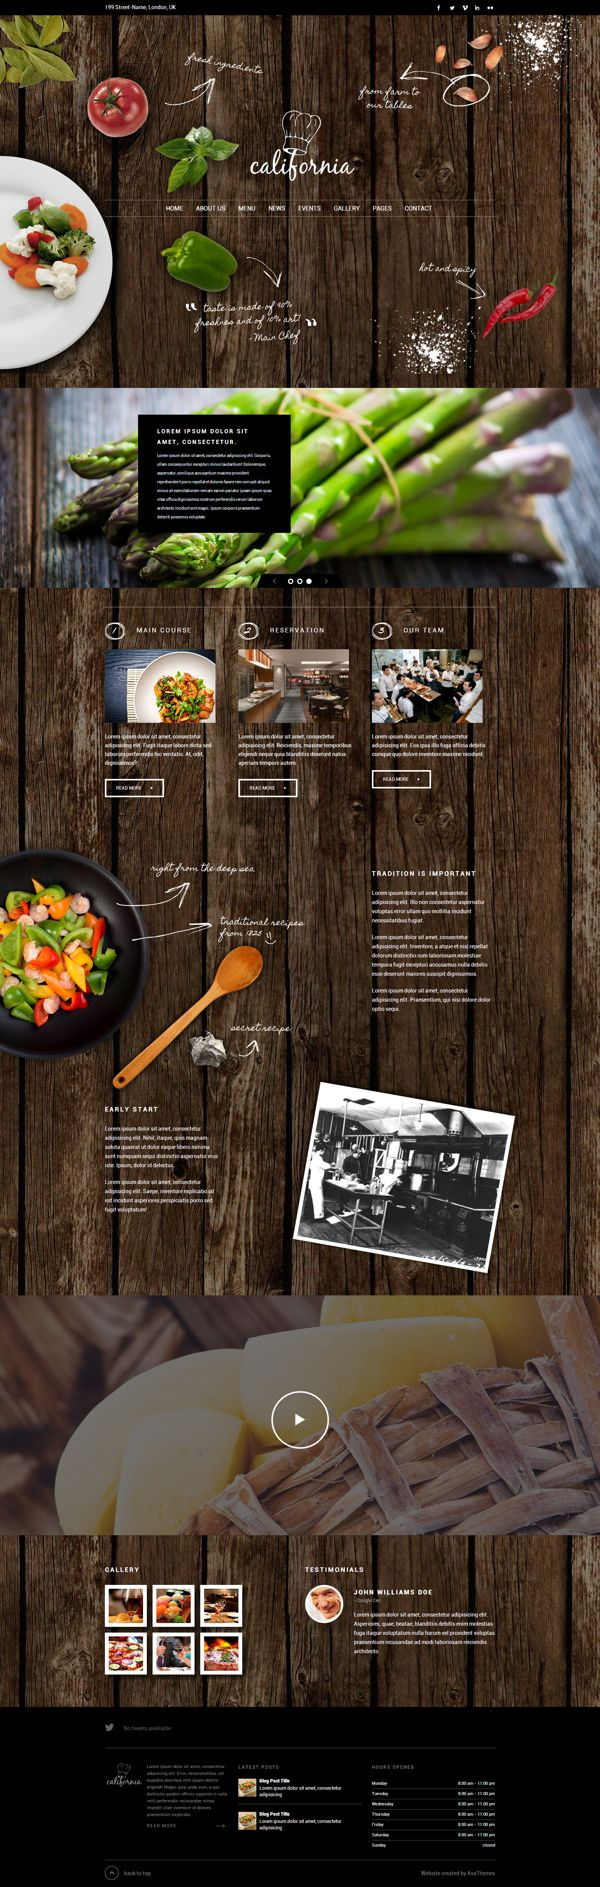 California - Restaurant Hotel Coffee Bar Site Template by AVAThemes